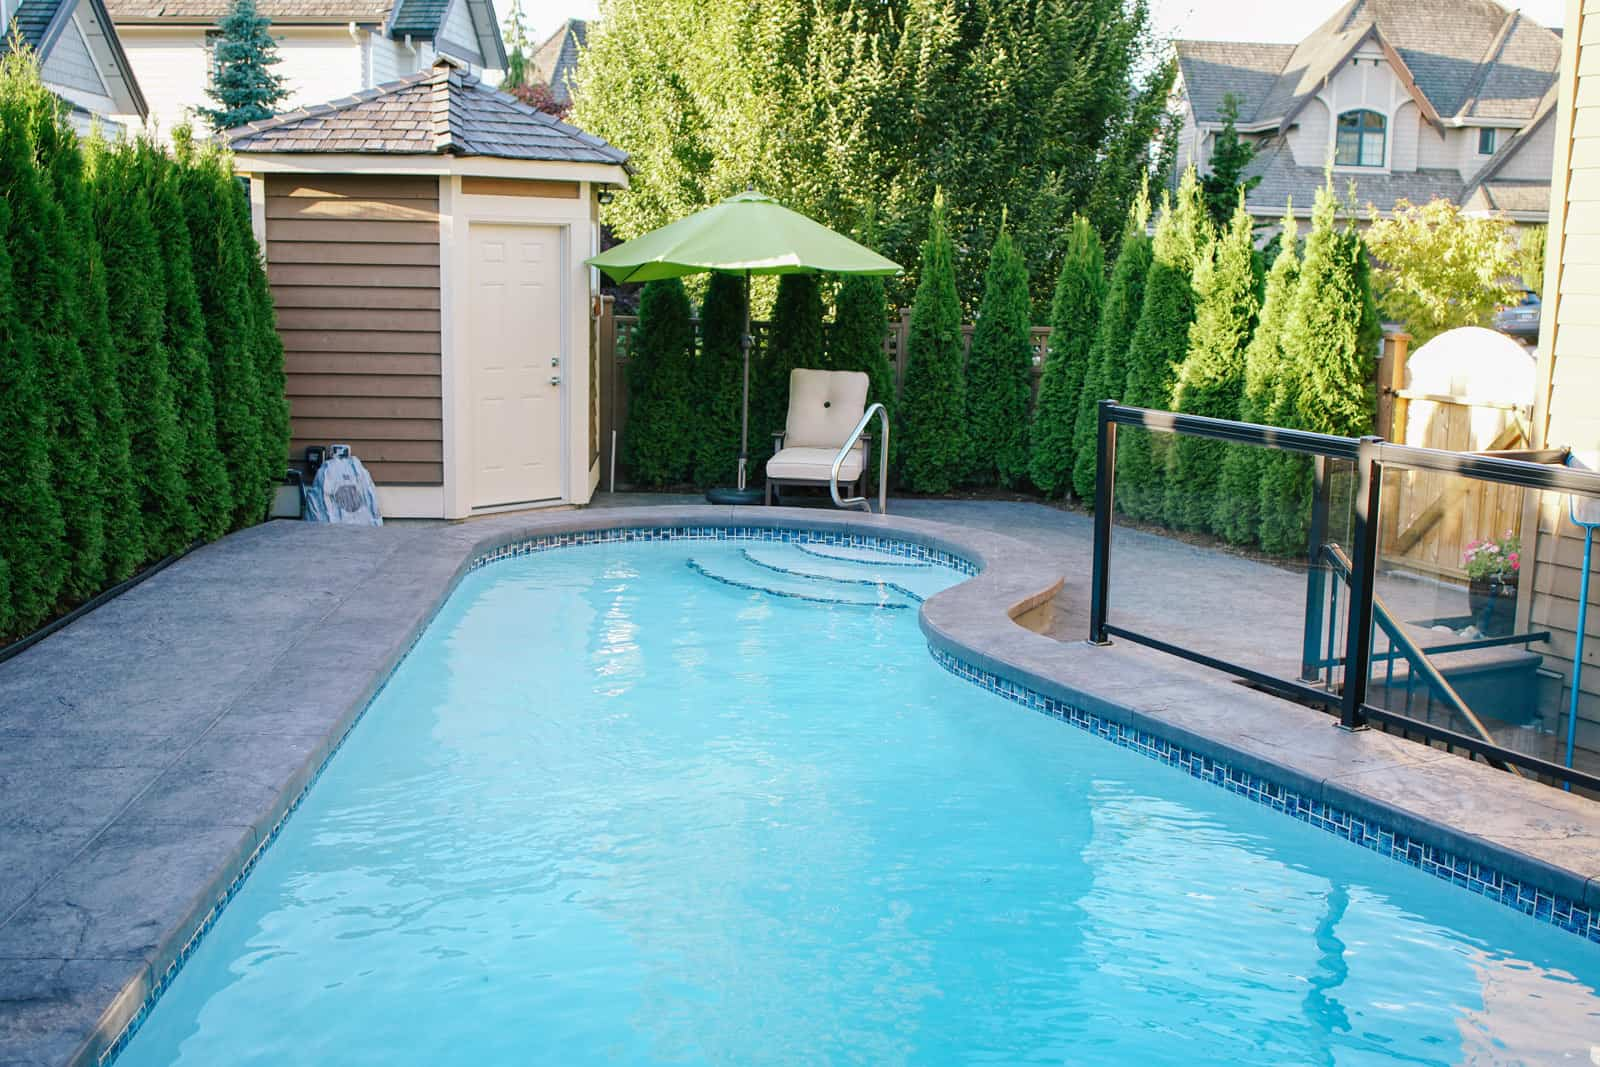 Marvelous compact swimming pool ideas best inspiration for Pool design concepts